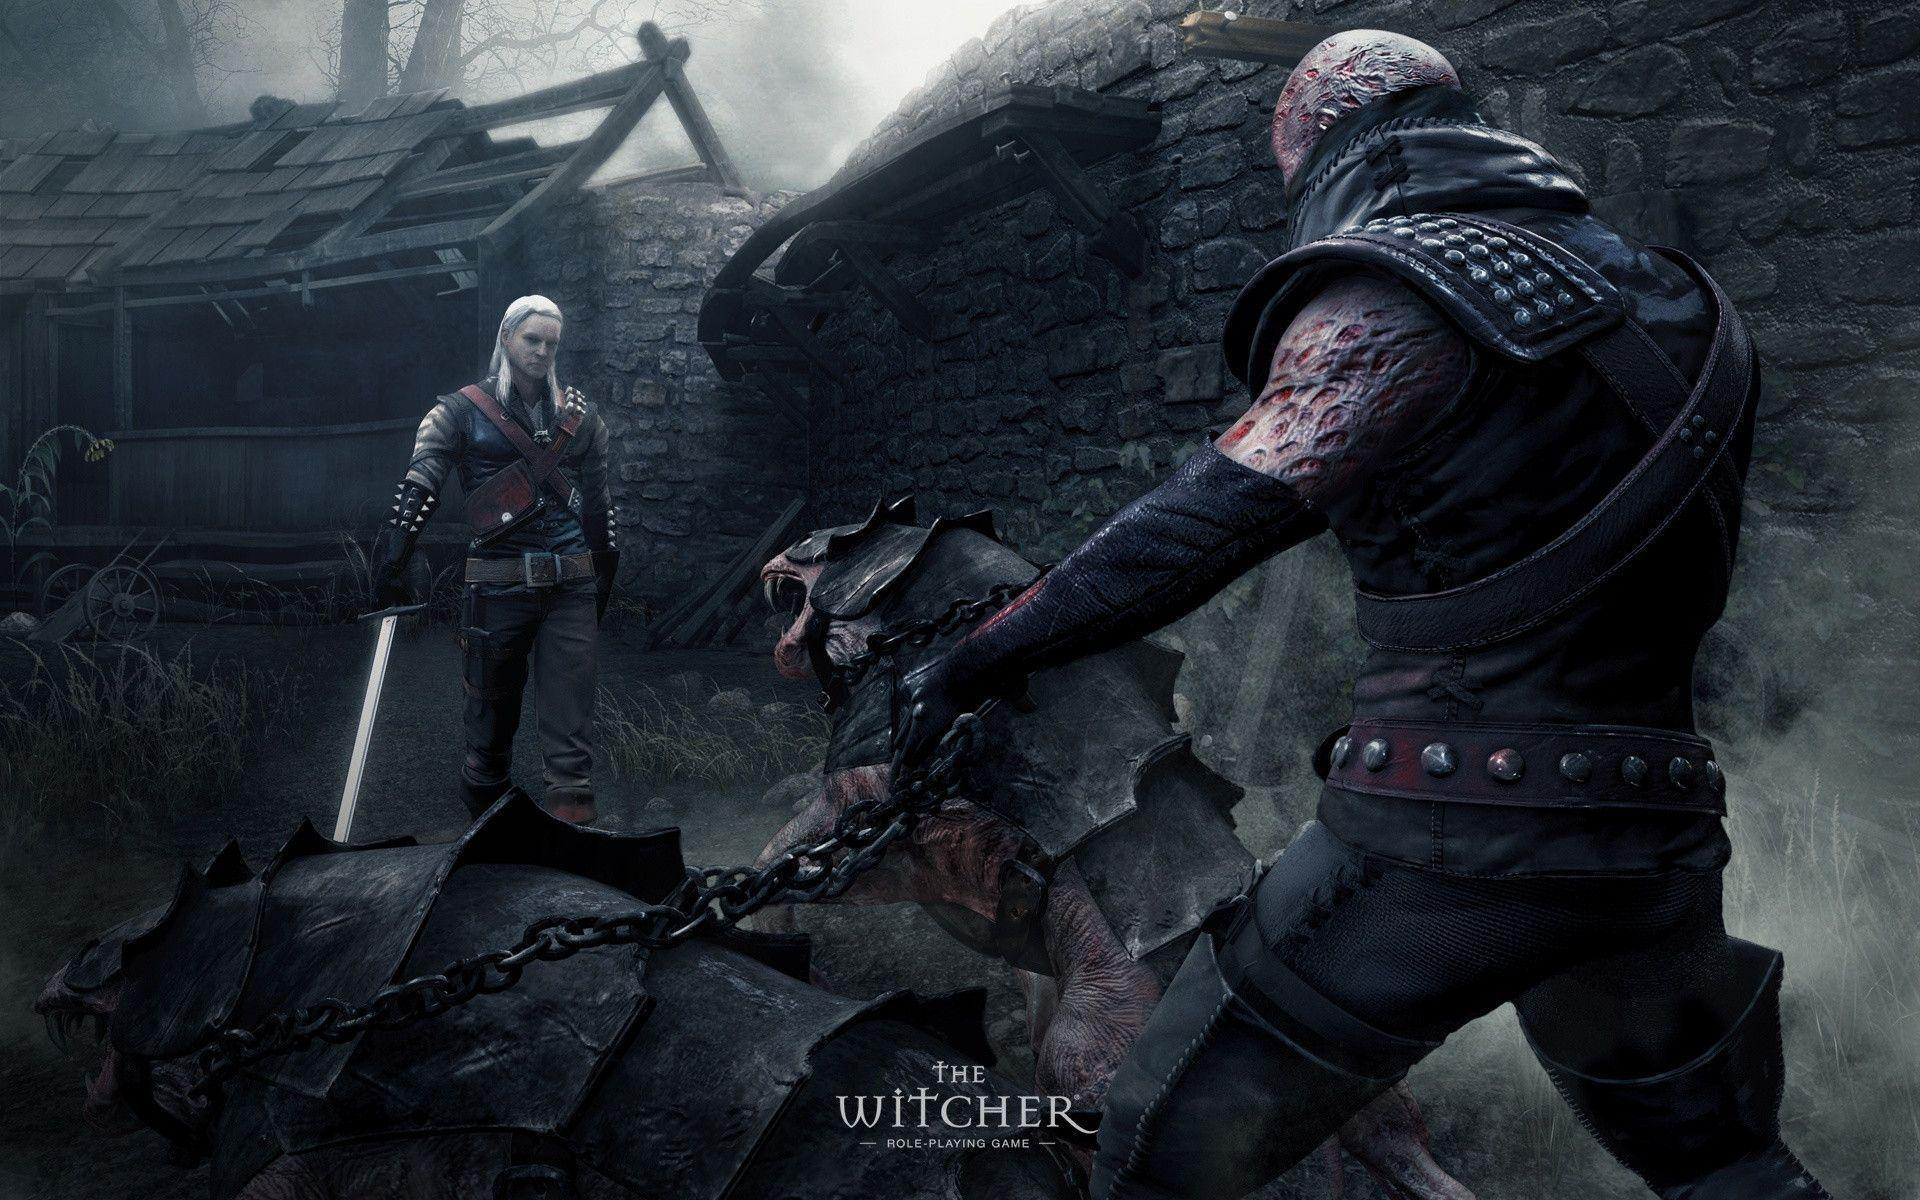 The Witcher Wallpapers - Wallpaper Cave